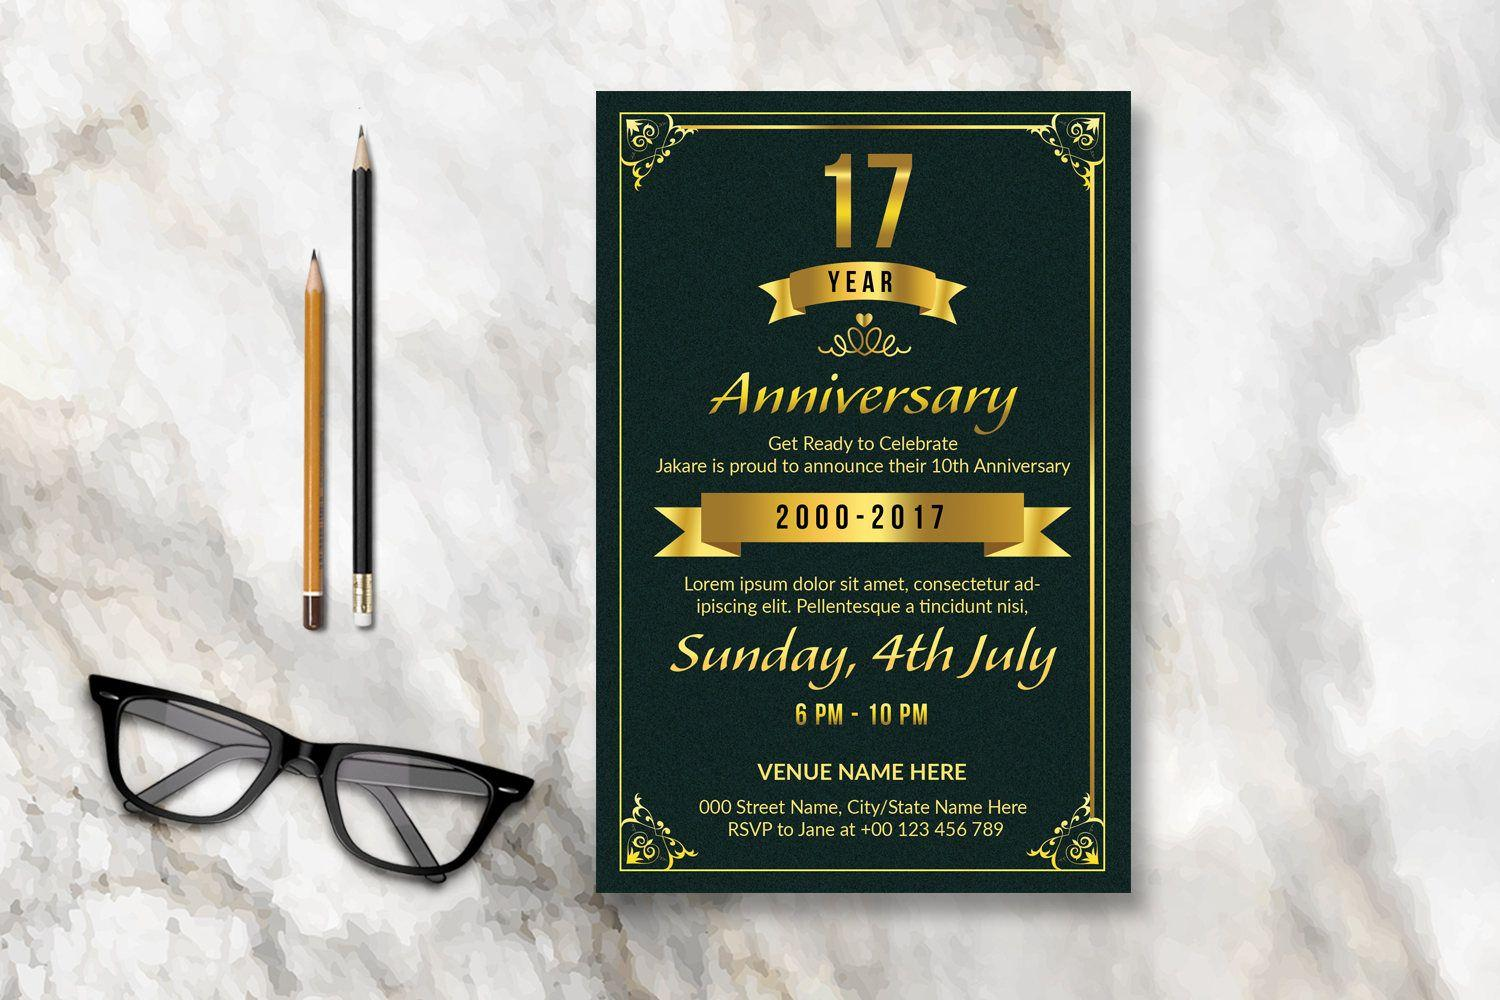 4×6 Invitation Template Photoshop